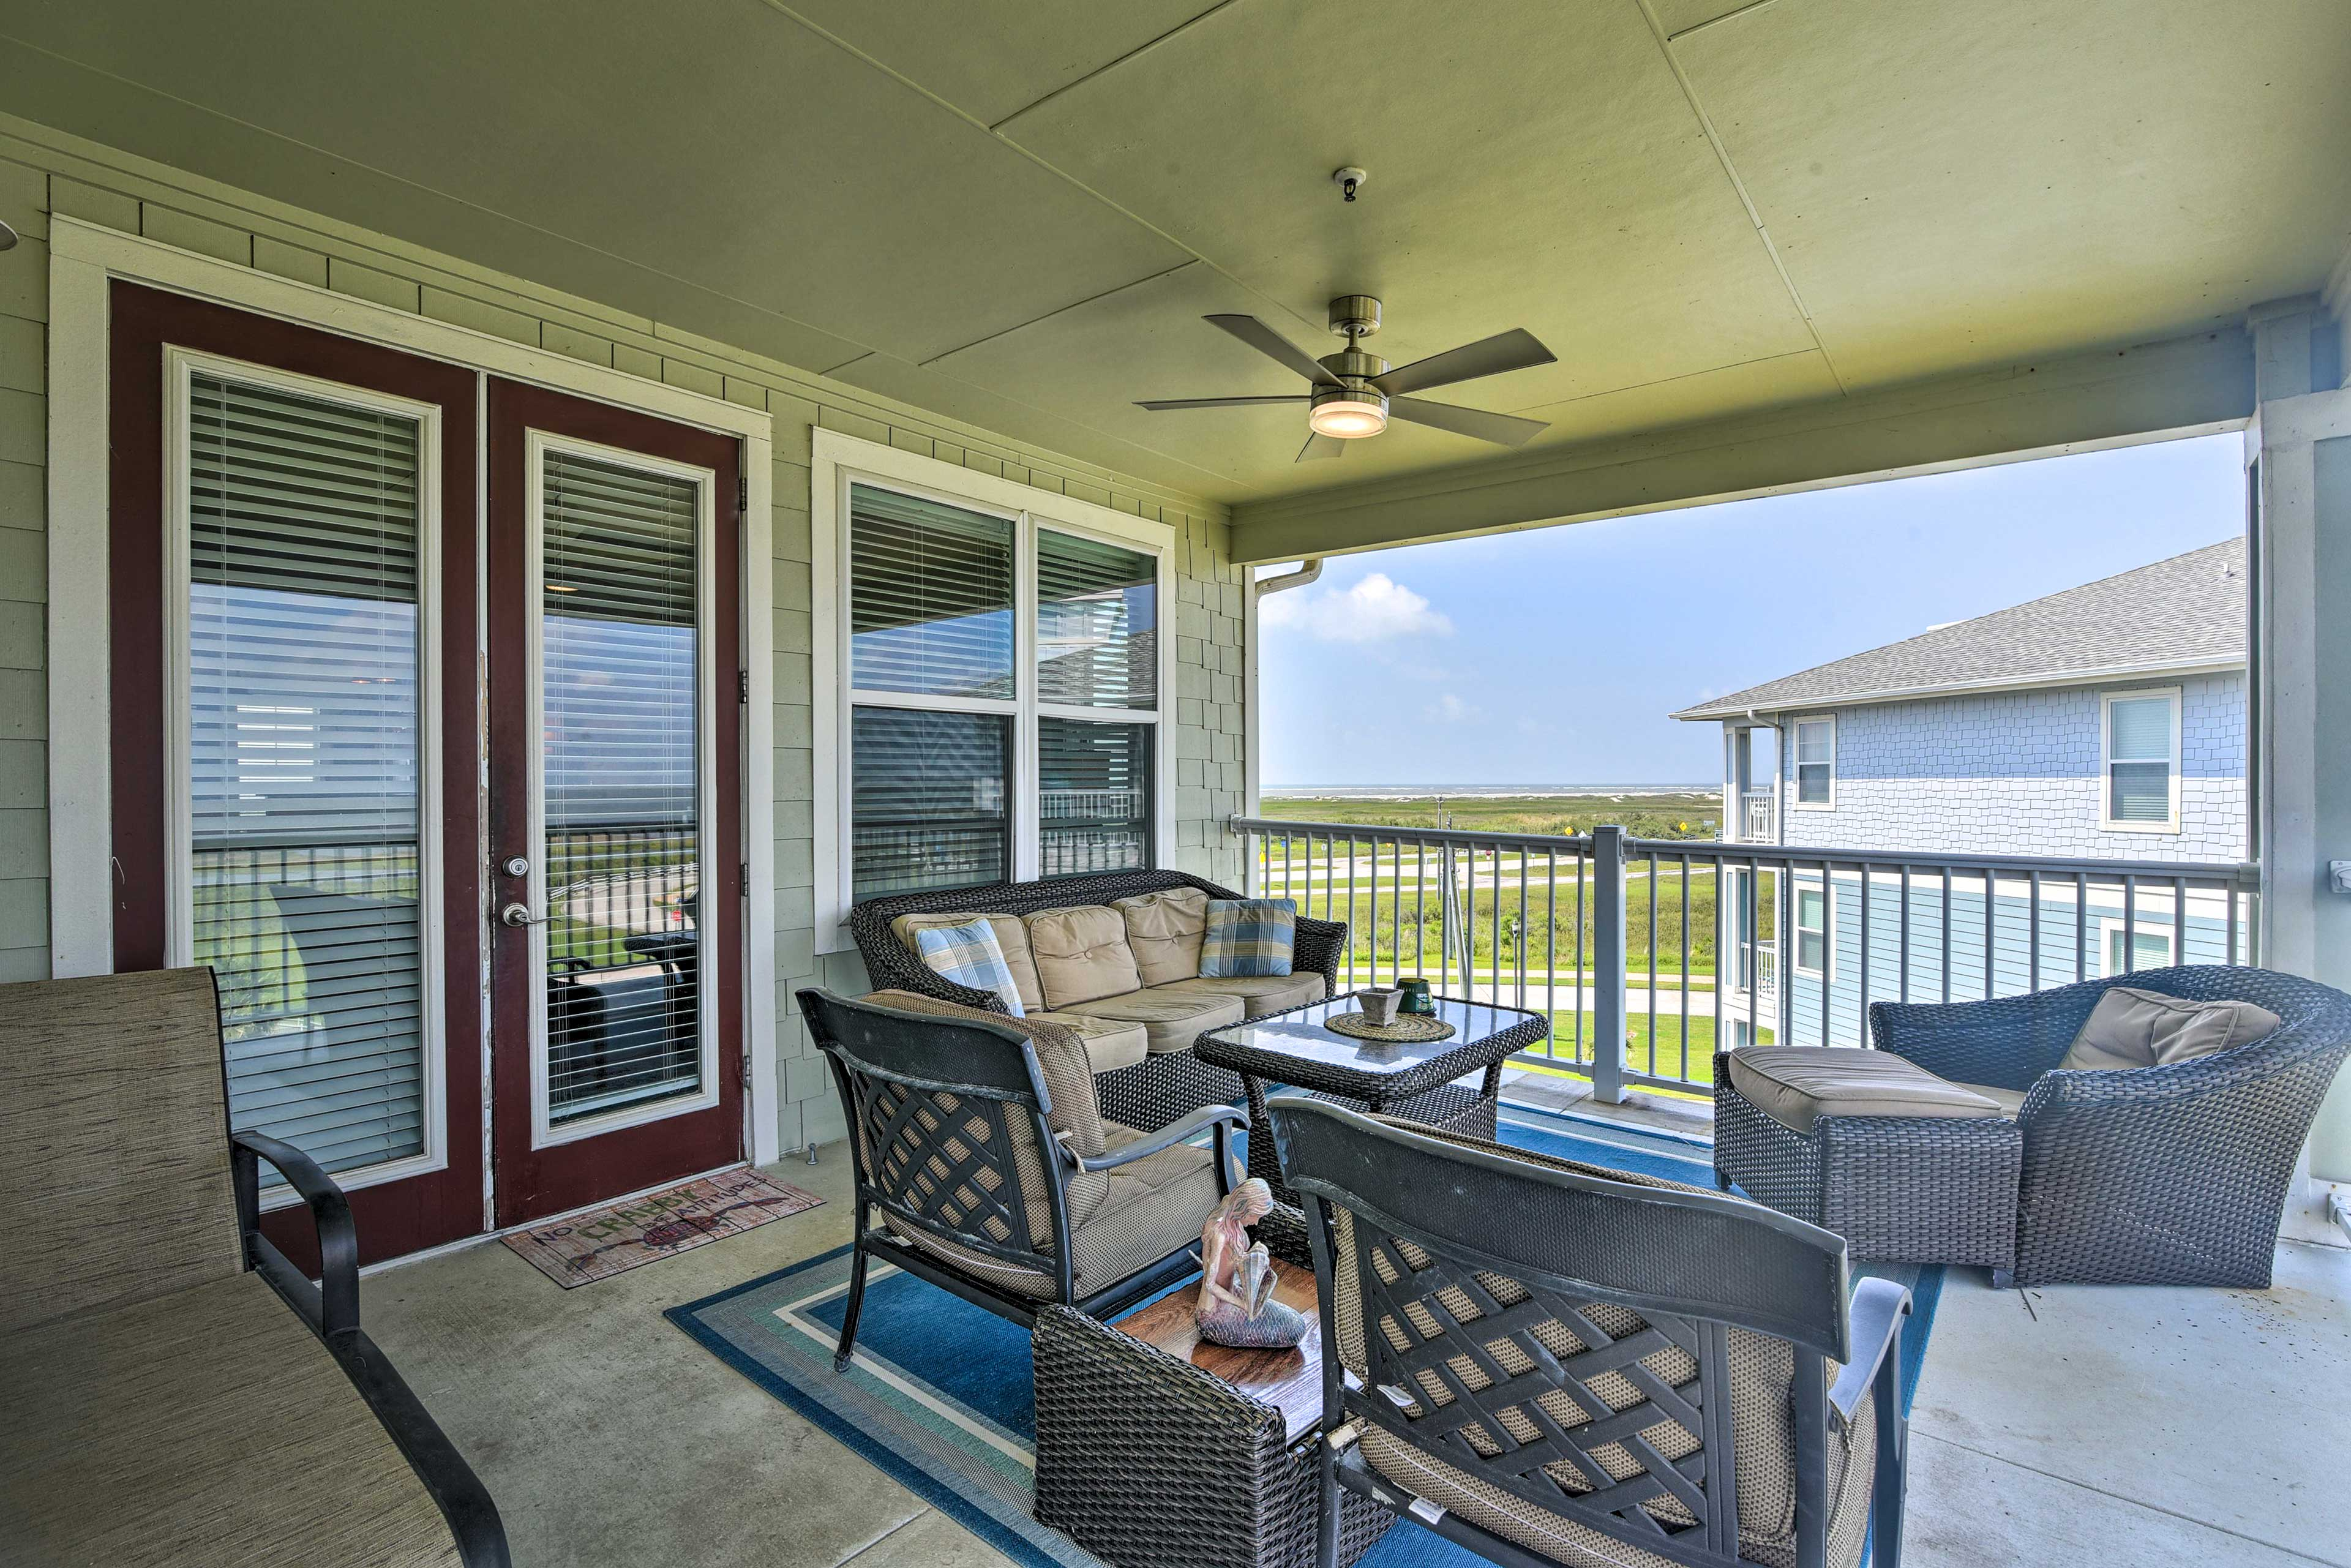 Sip your morning coffee or an evening nightcap on the balcony.